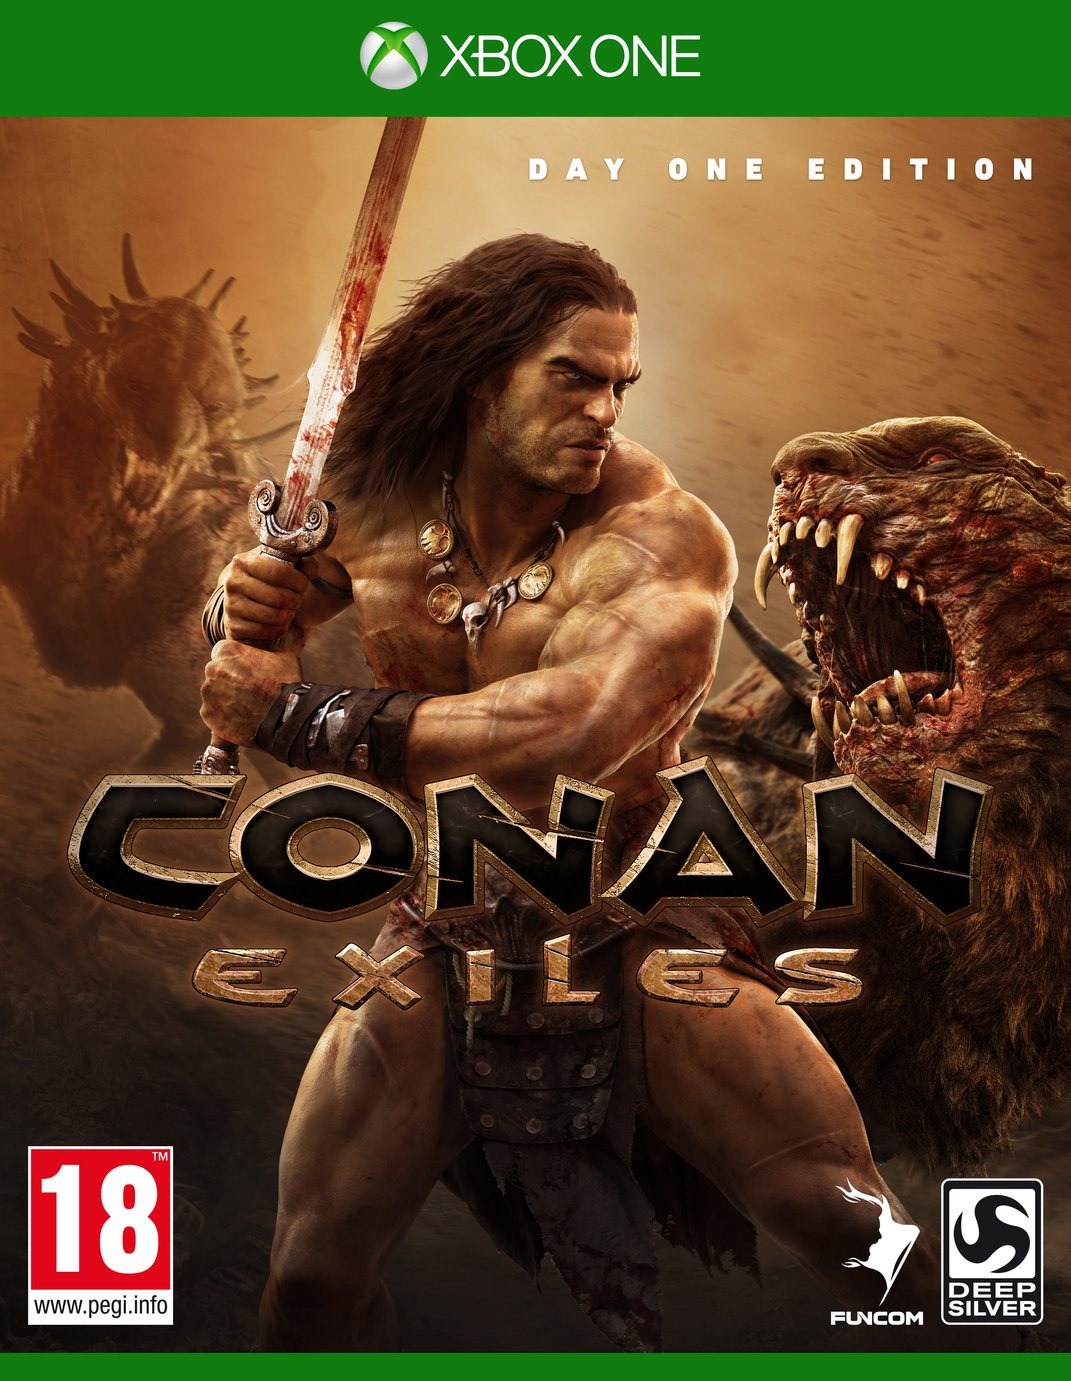 Image of Conan Exiles Day 1 Edition Xbox One Pre-Order Game